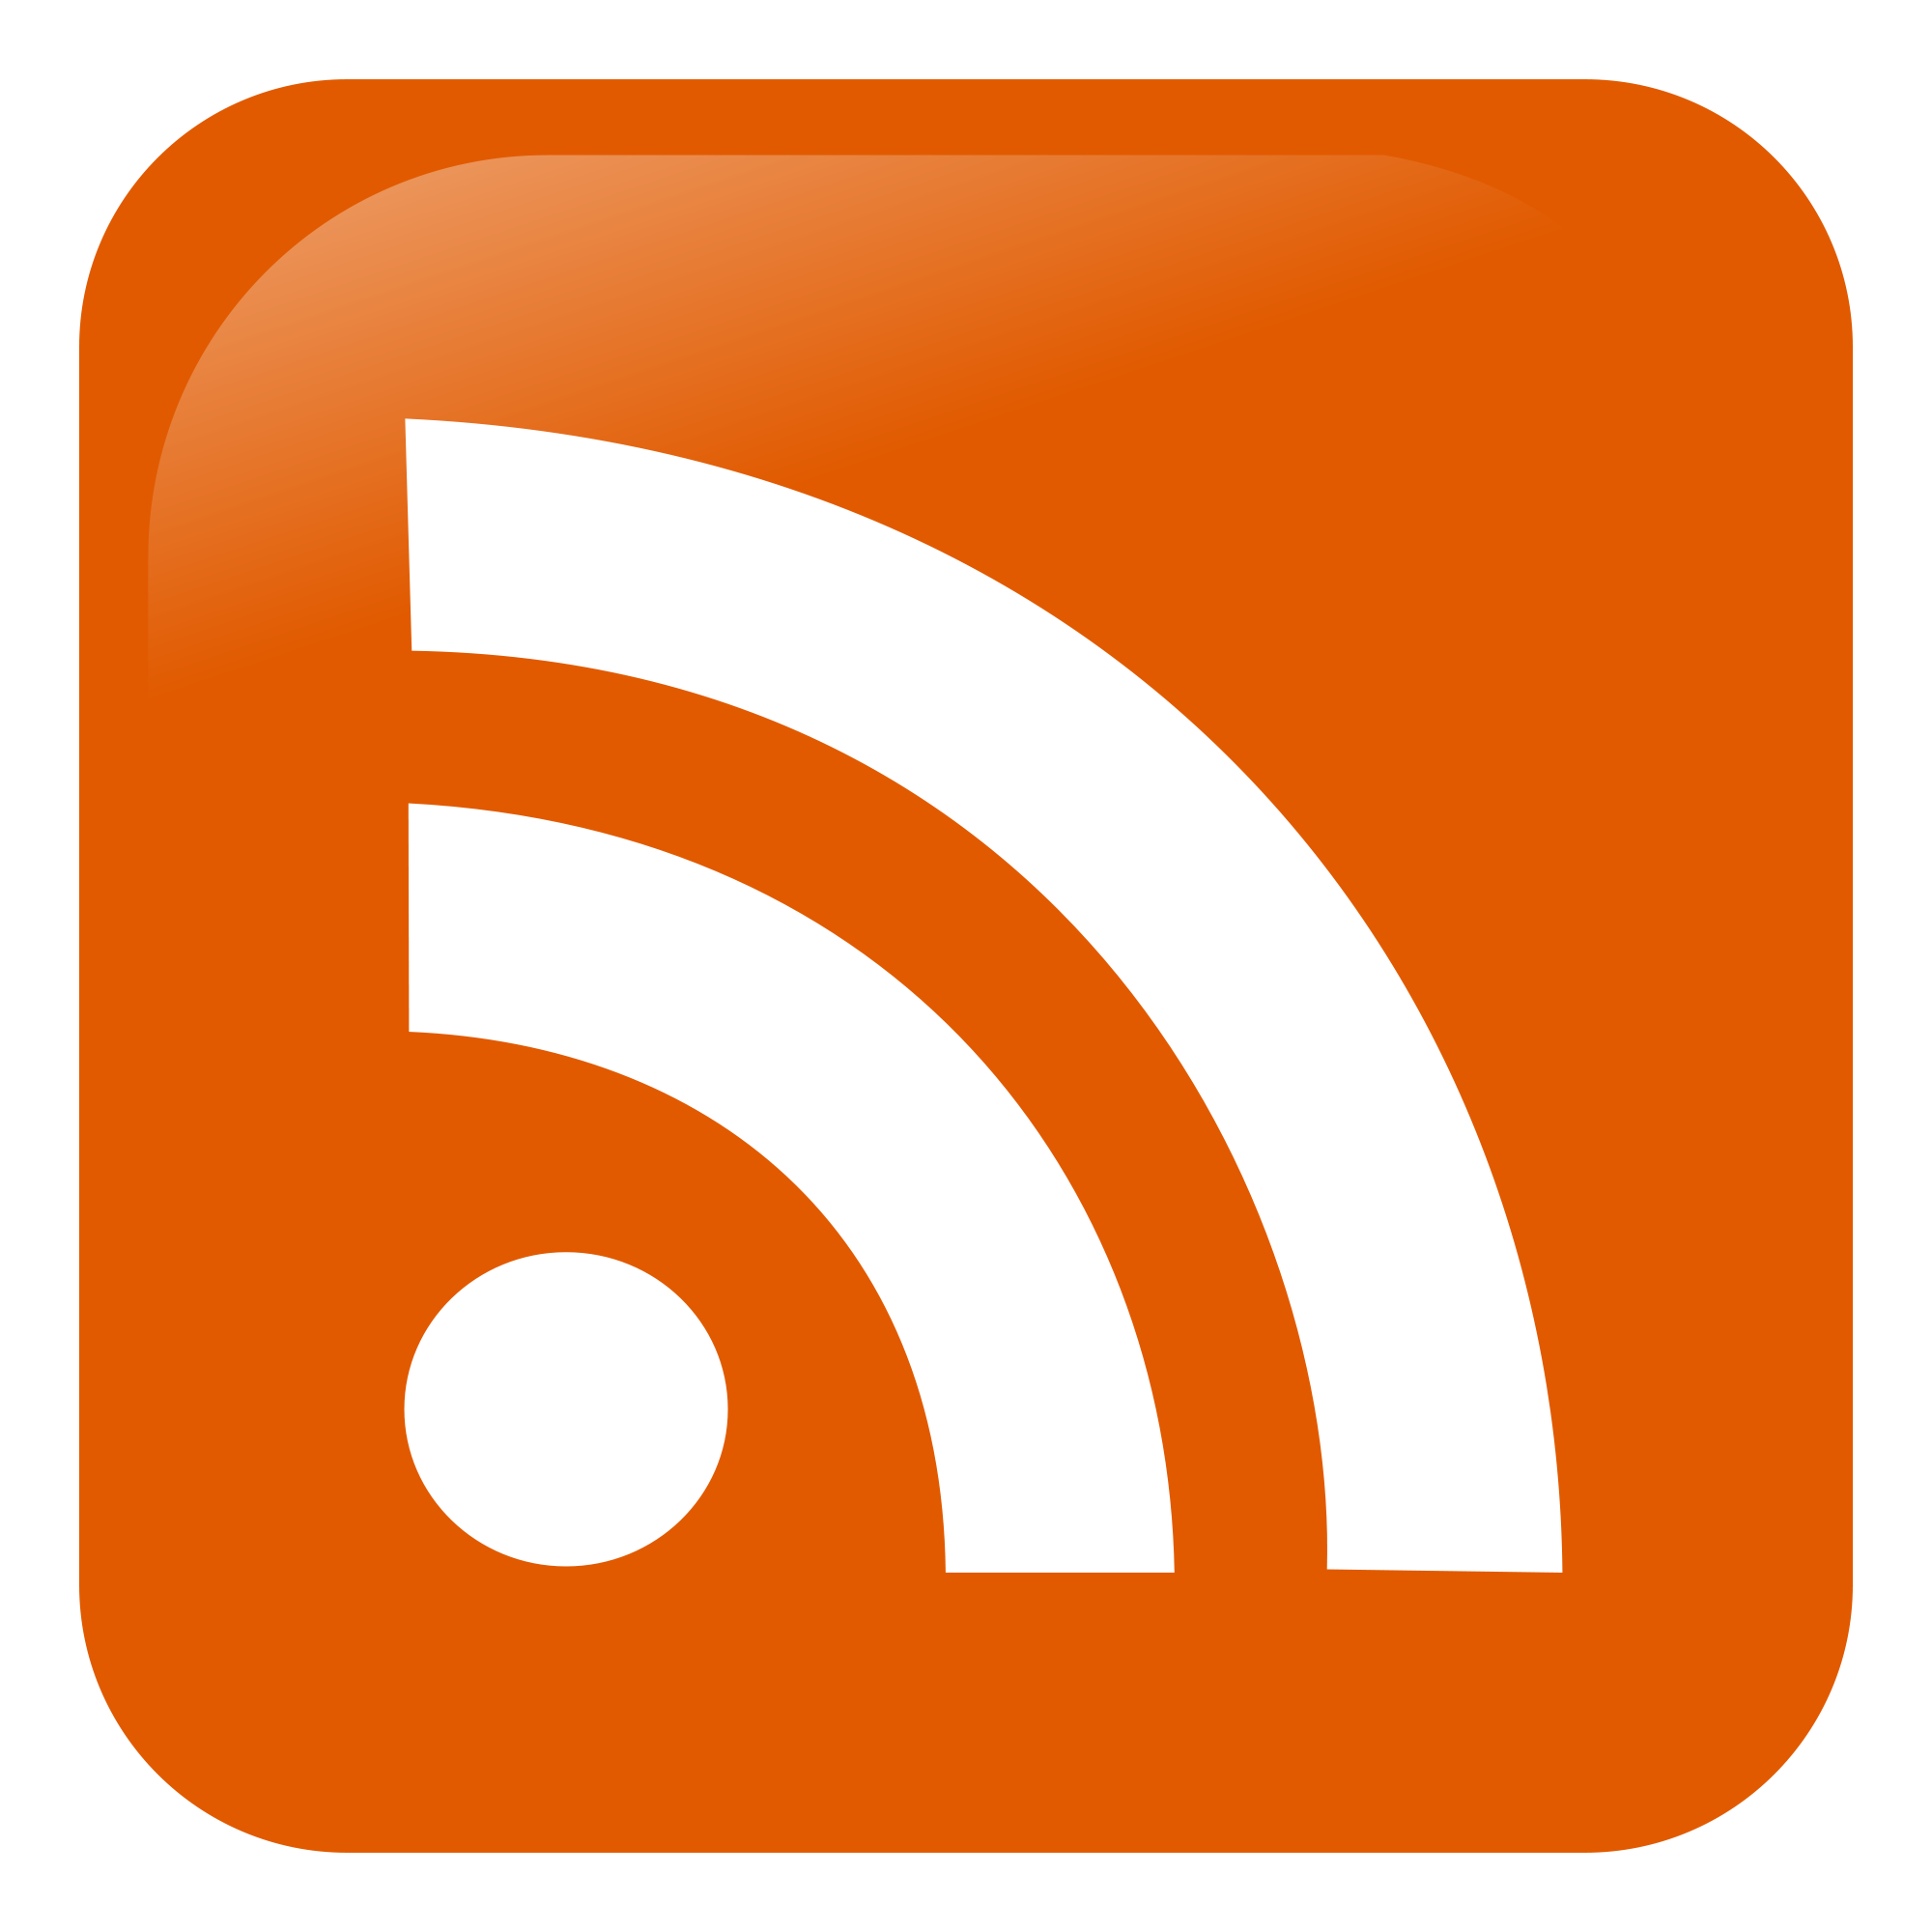 Rss icons png. File feed svg wikimedia